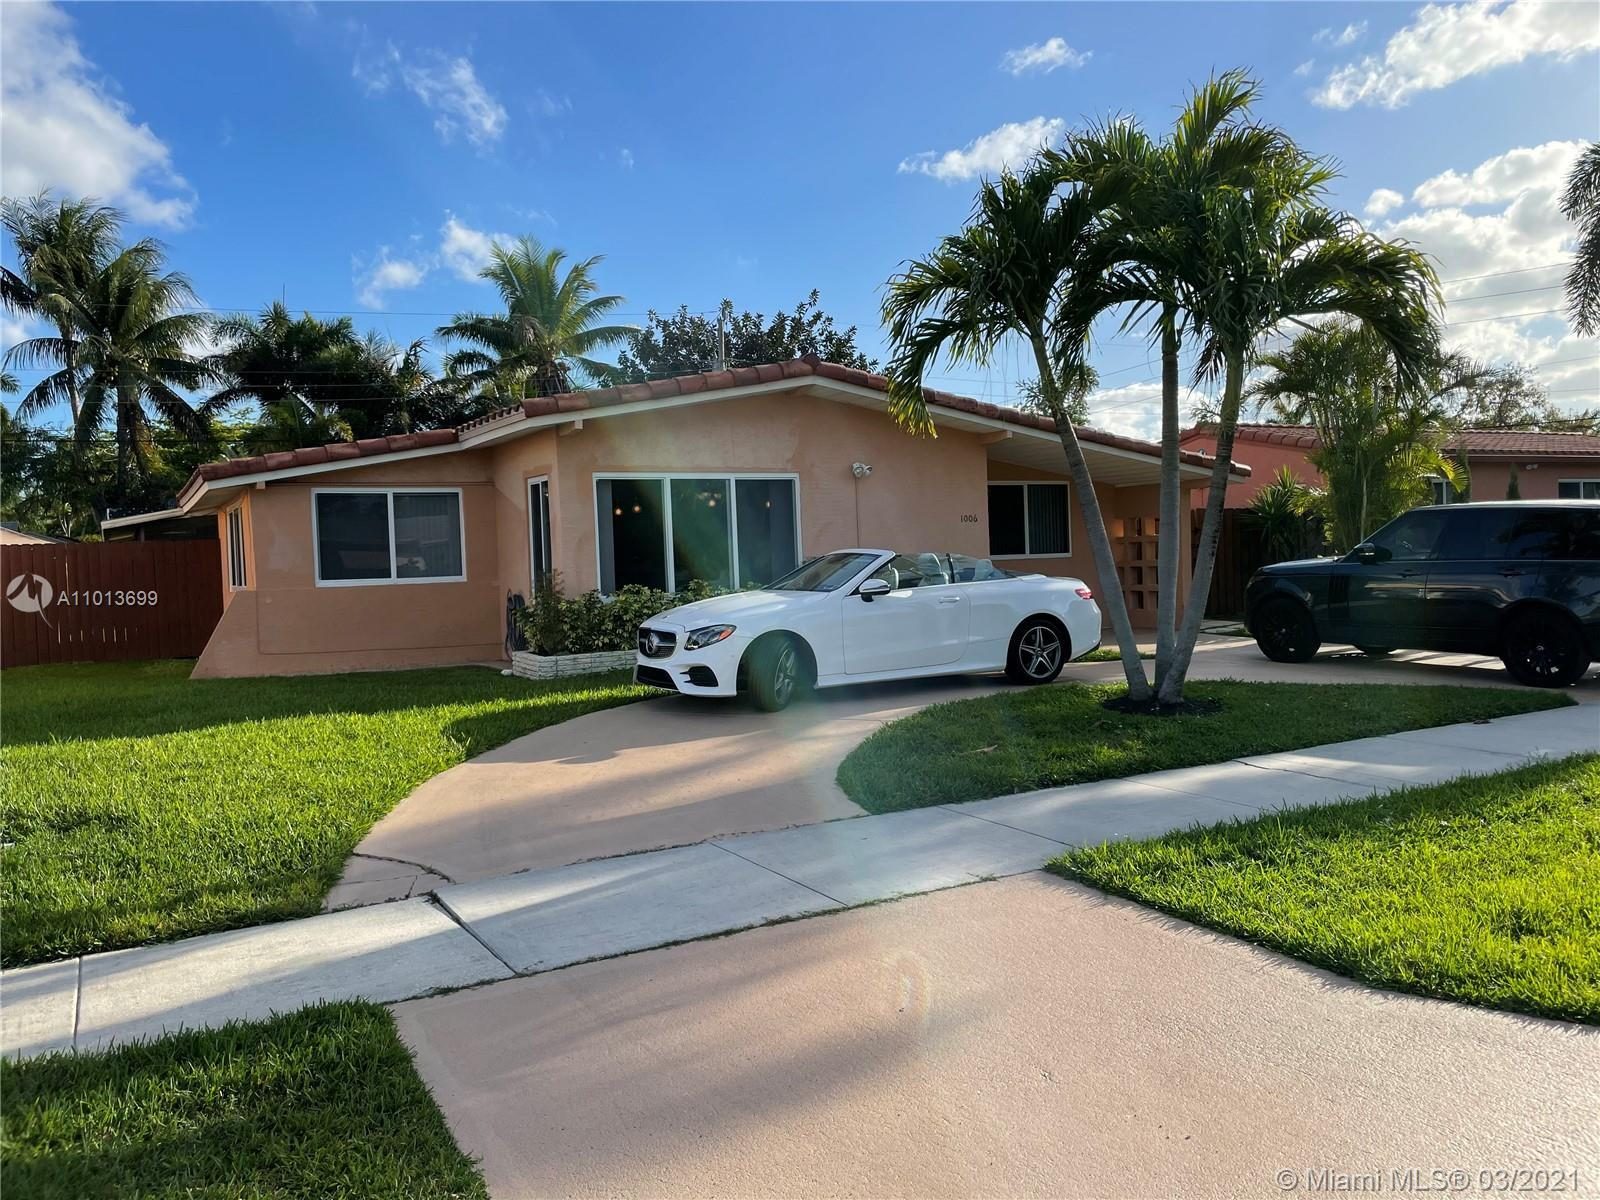 Charming Hallandale house with 3 bedroom + DEN, 2 full bath and large living area.features a lush la